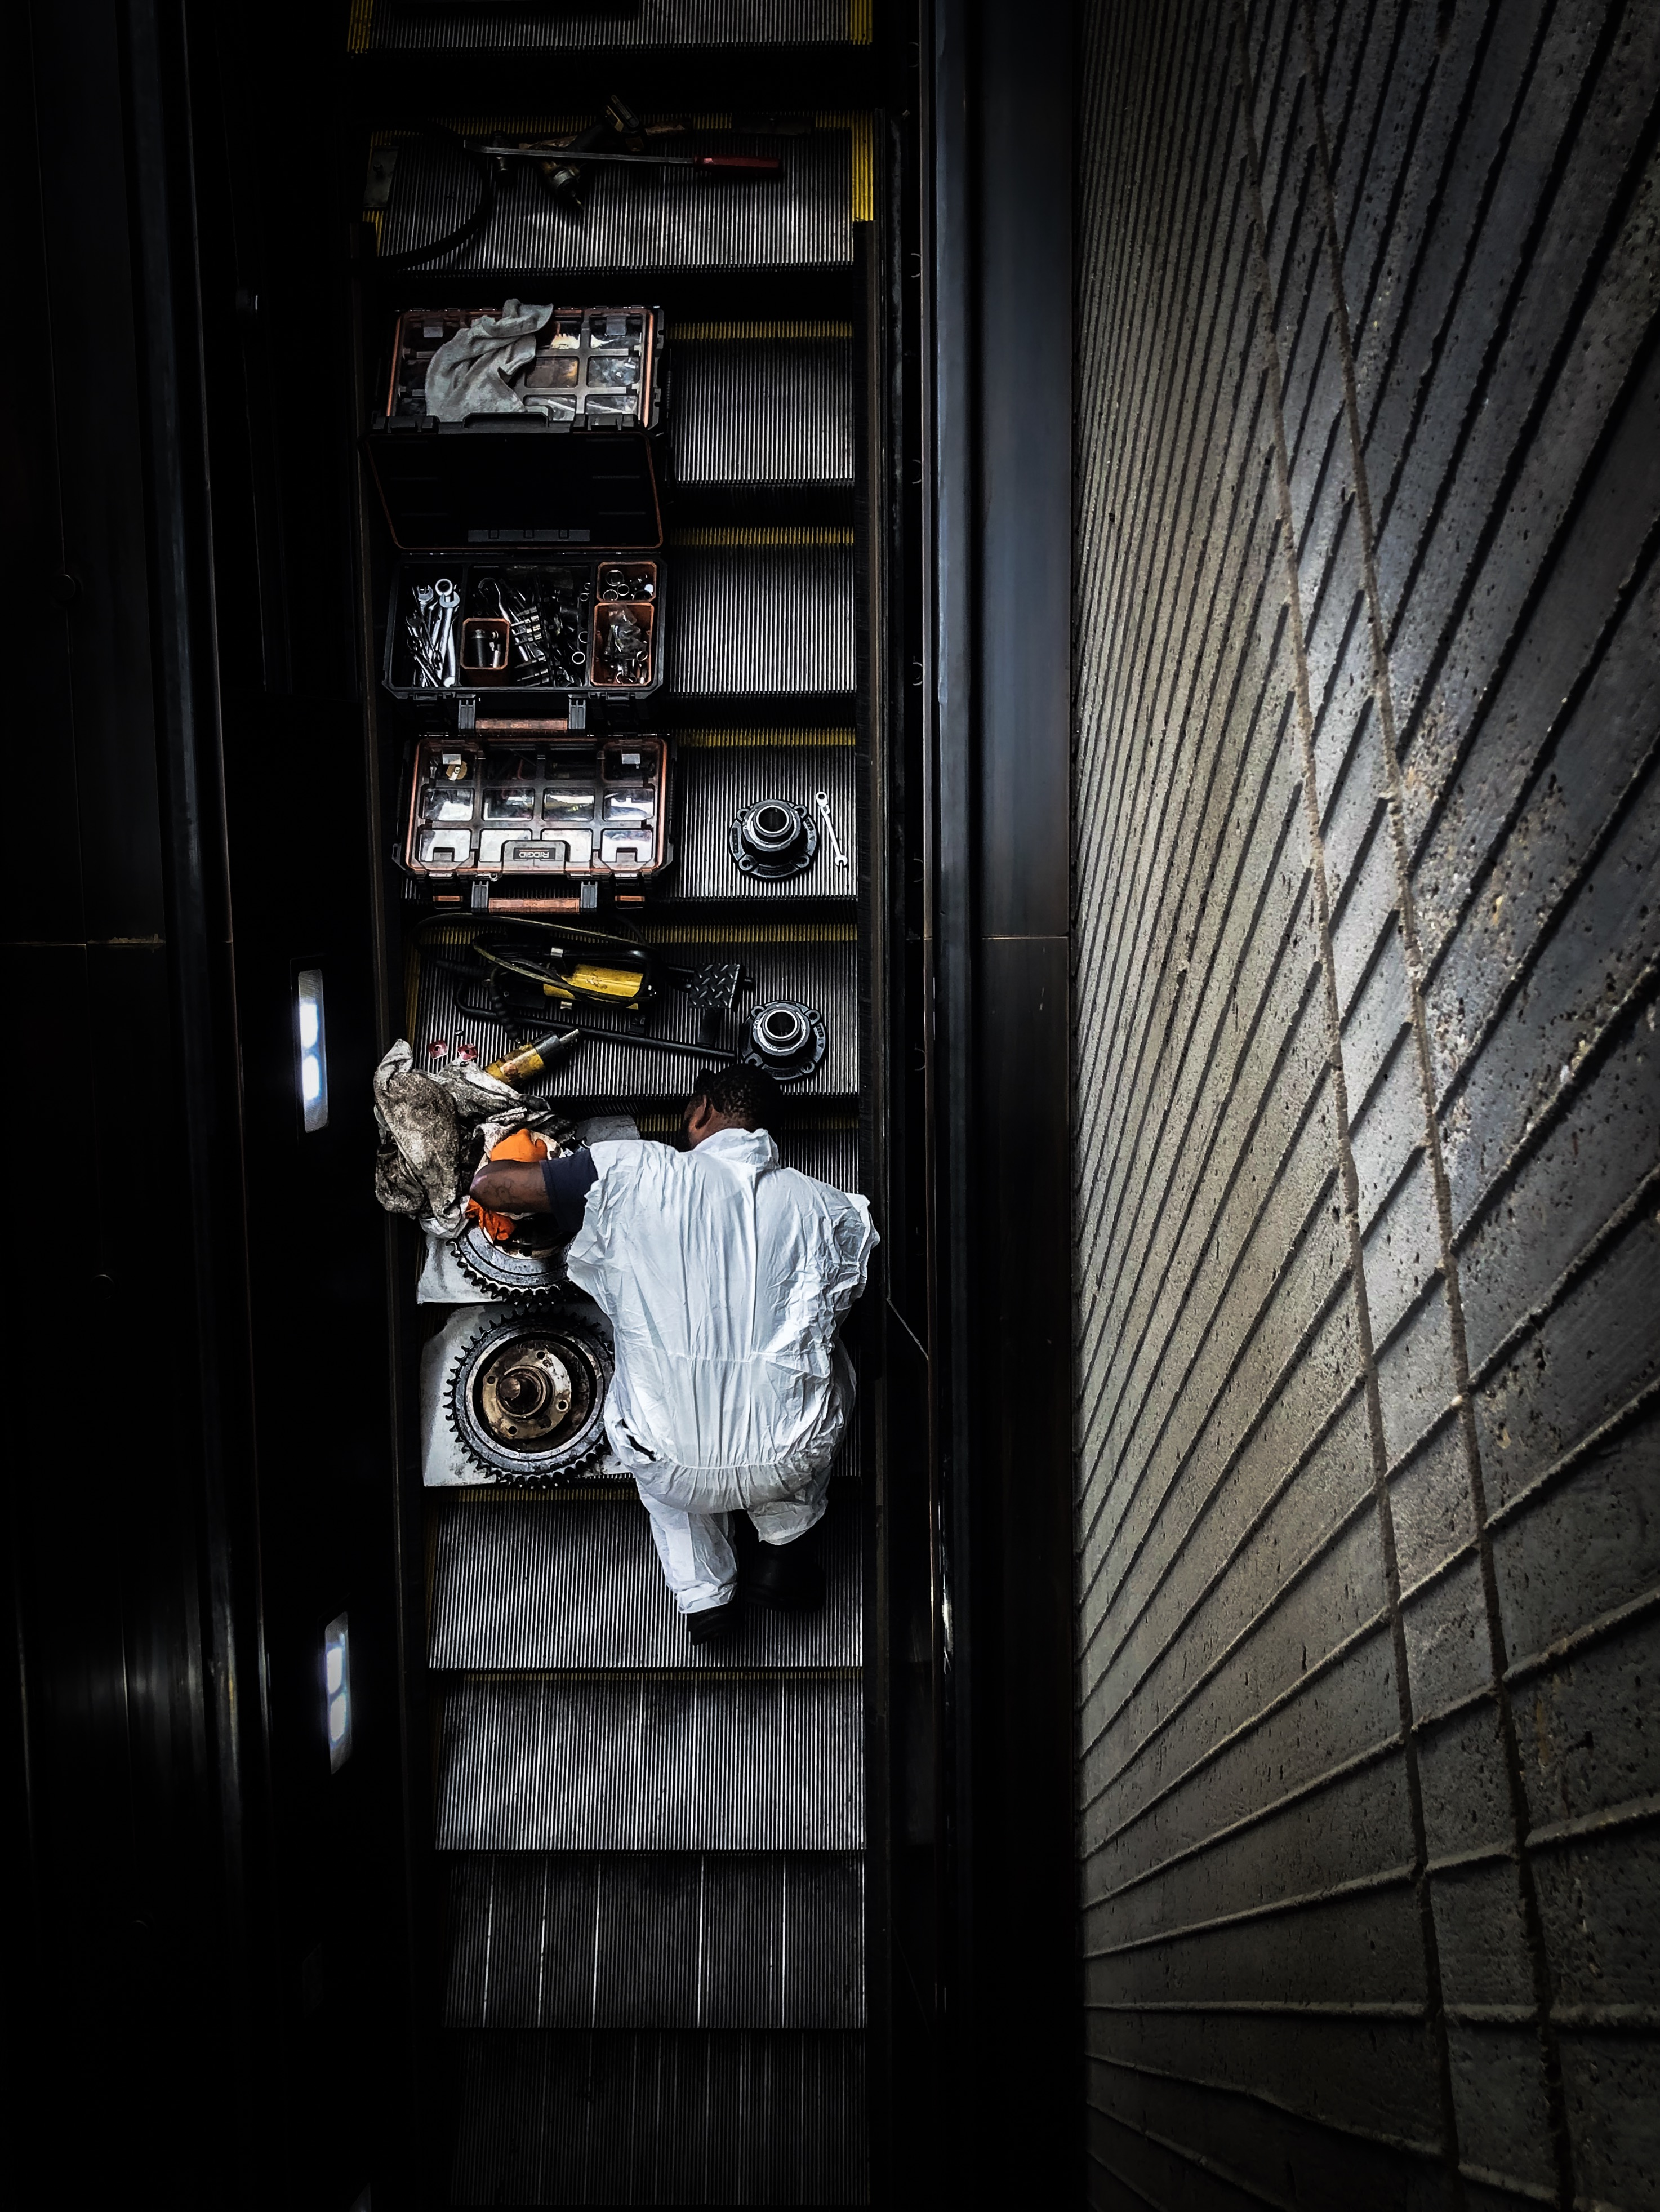 """Photograph of the """"Working Man"""" is a portrait of one man's intricate, detailed, and meticulous handling of the mechanical work and care that goes into the engineering of the escalator."""